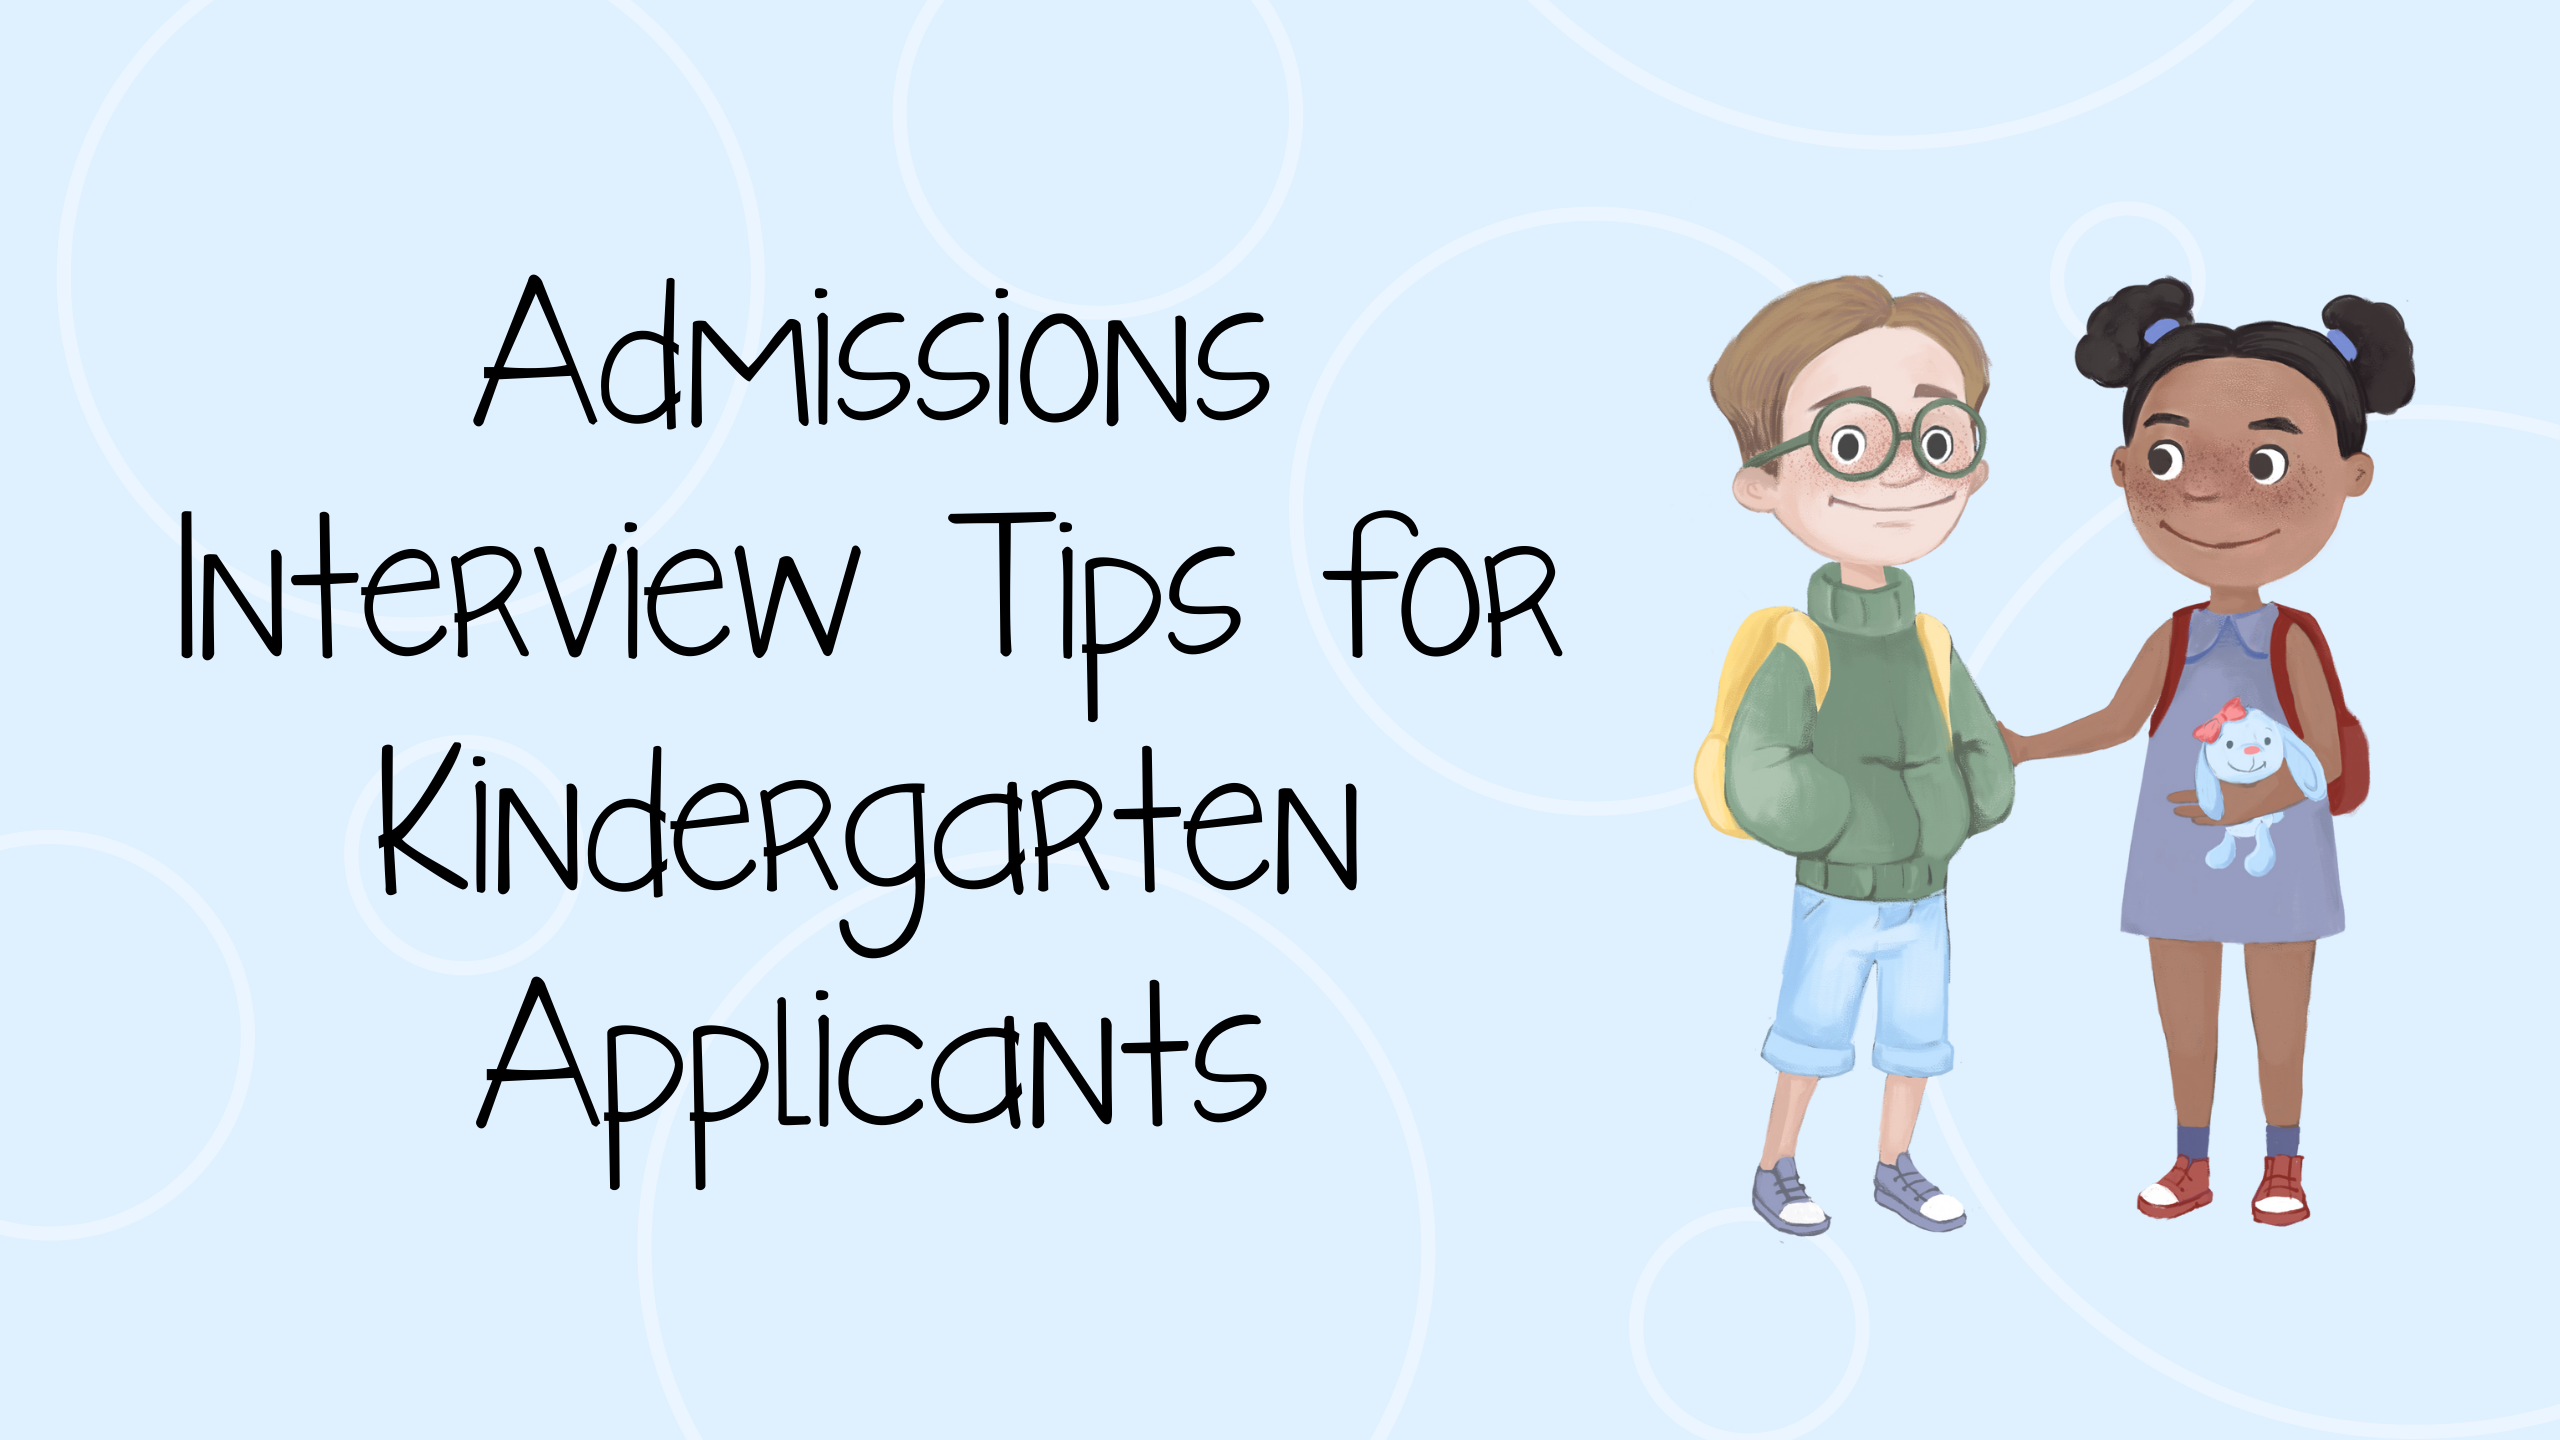 Admissions Interview Tips for Kindergarten Applicants